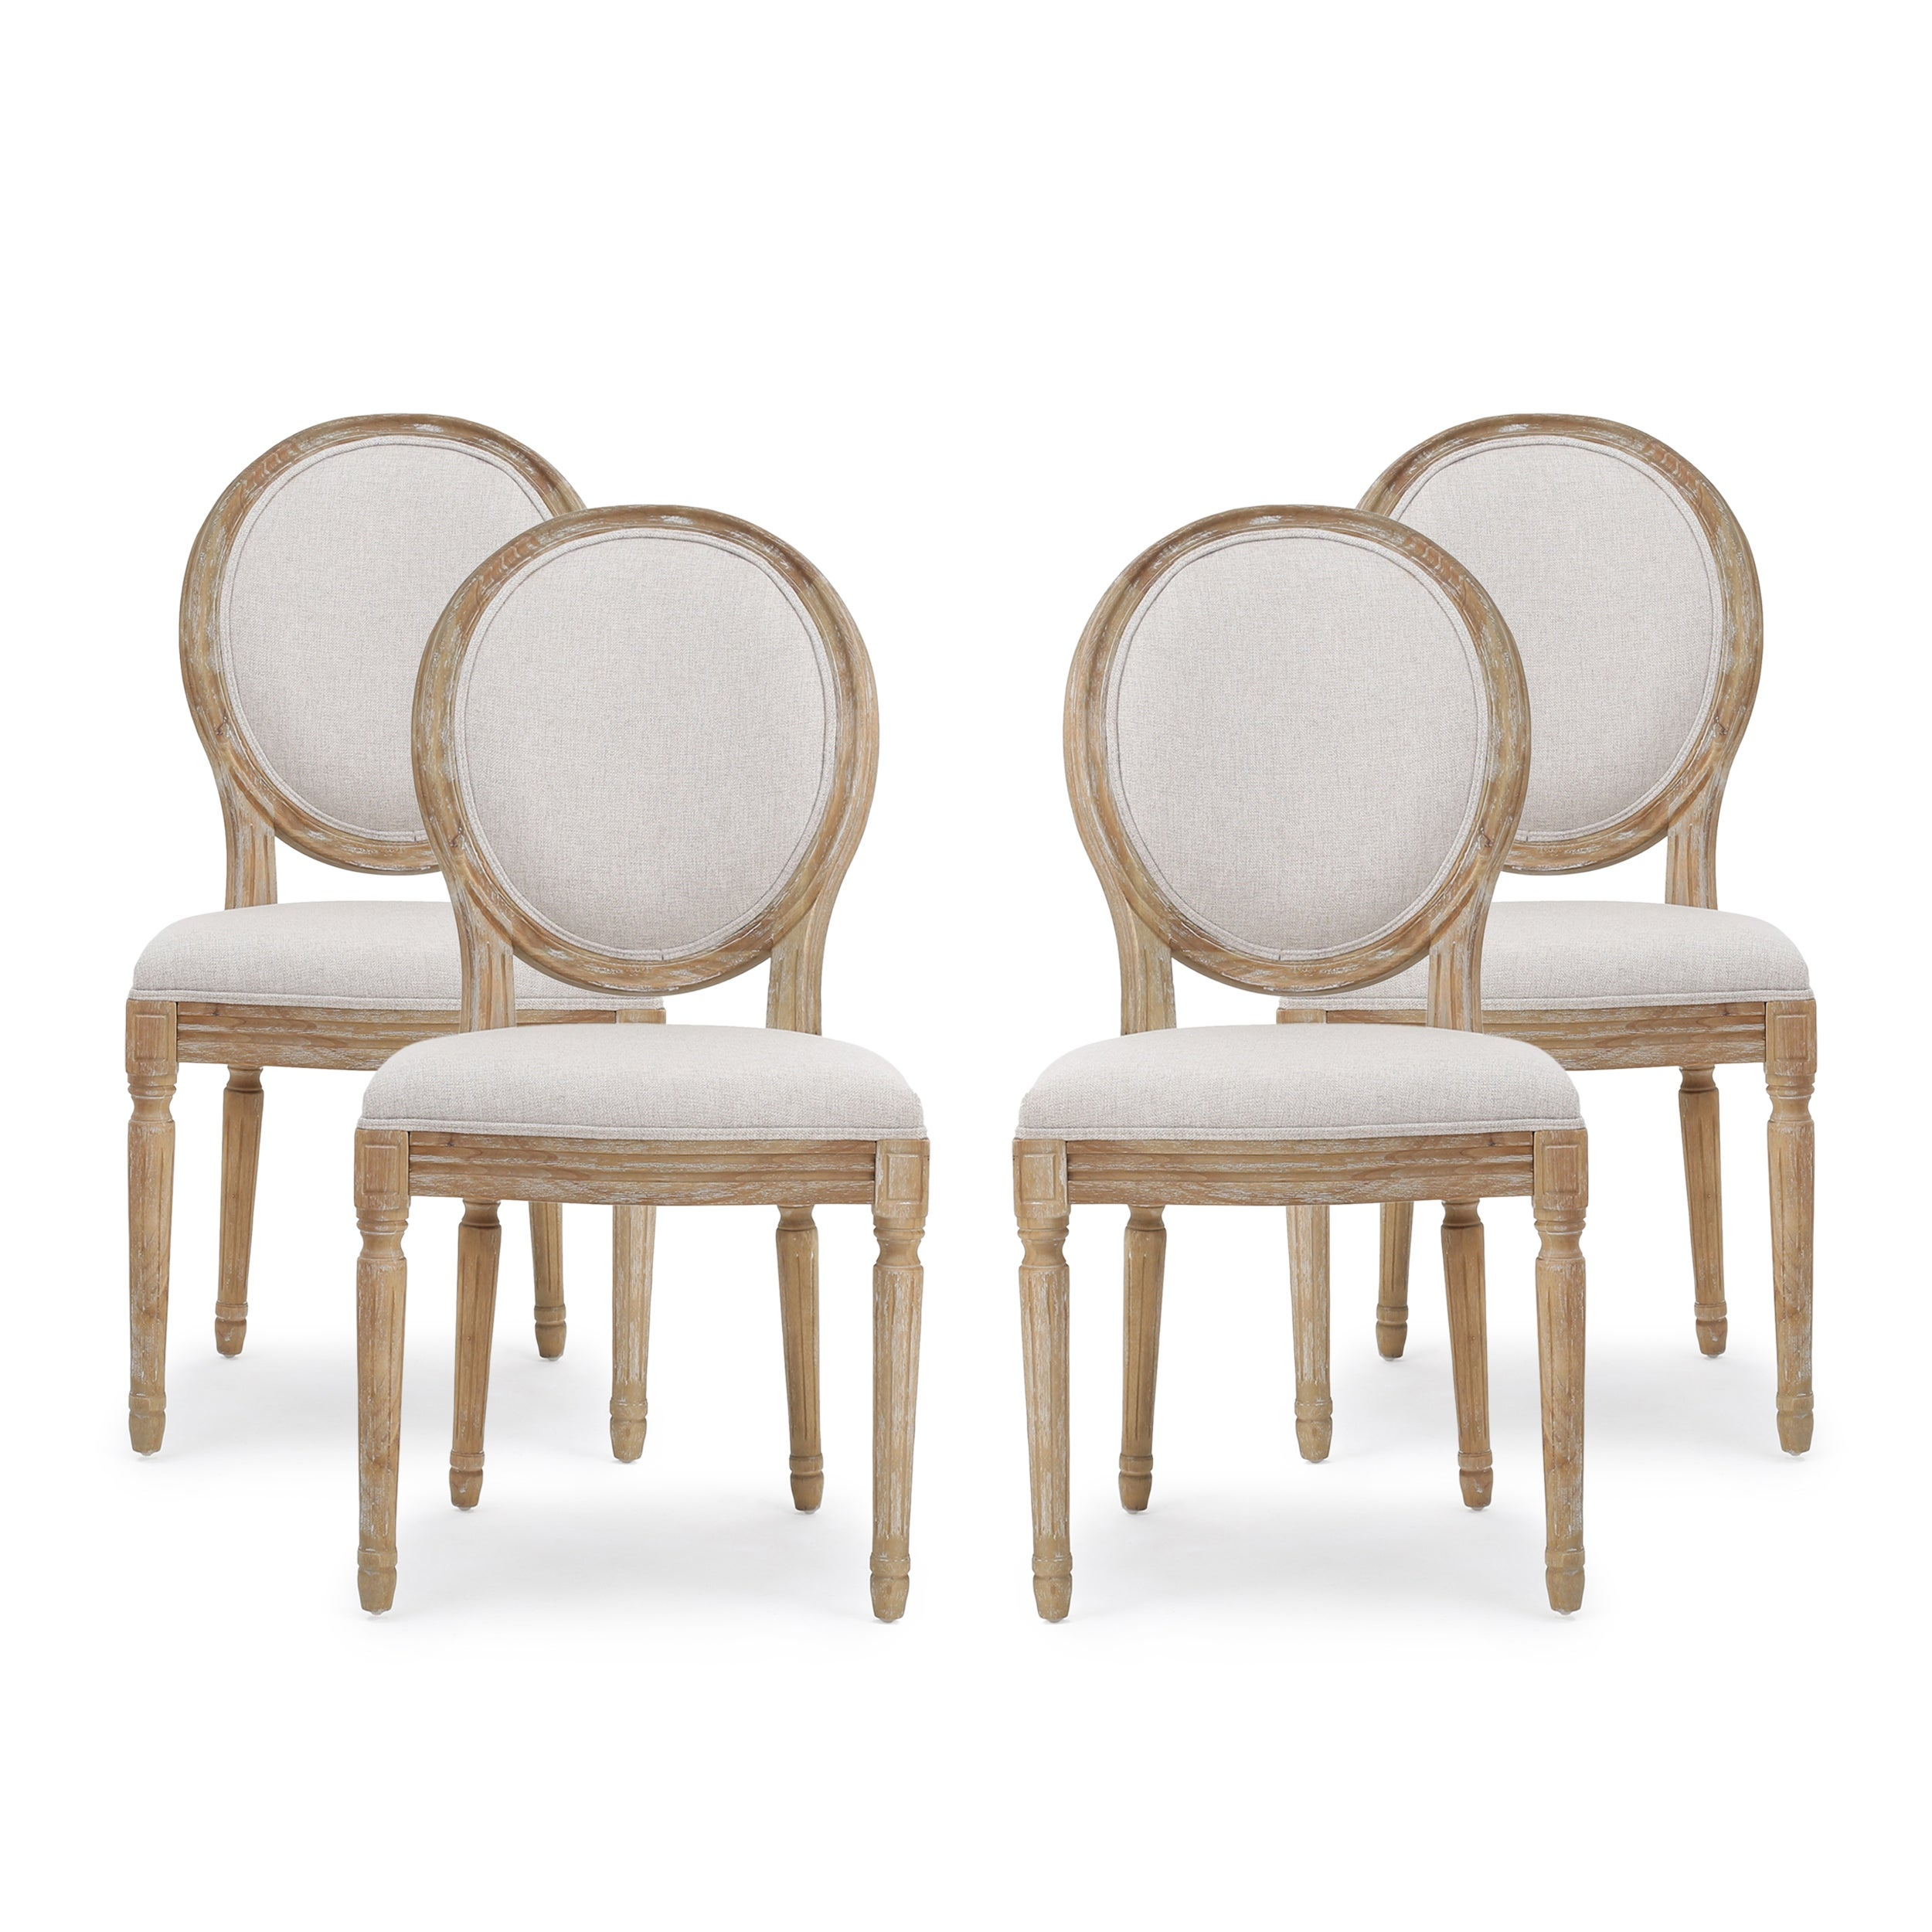 Christopher Knight Home Phinnaeus French Country Dining Chairs (Set of 4)